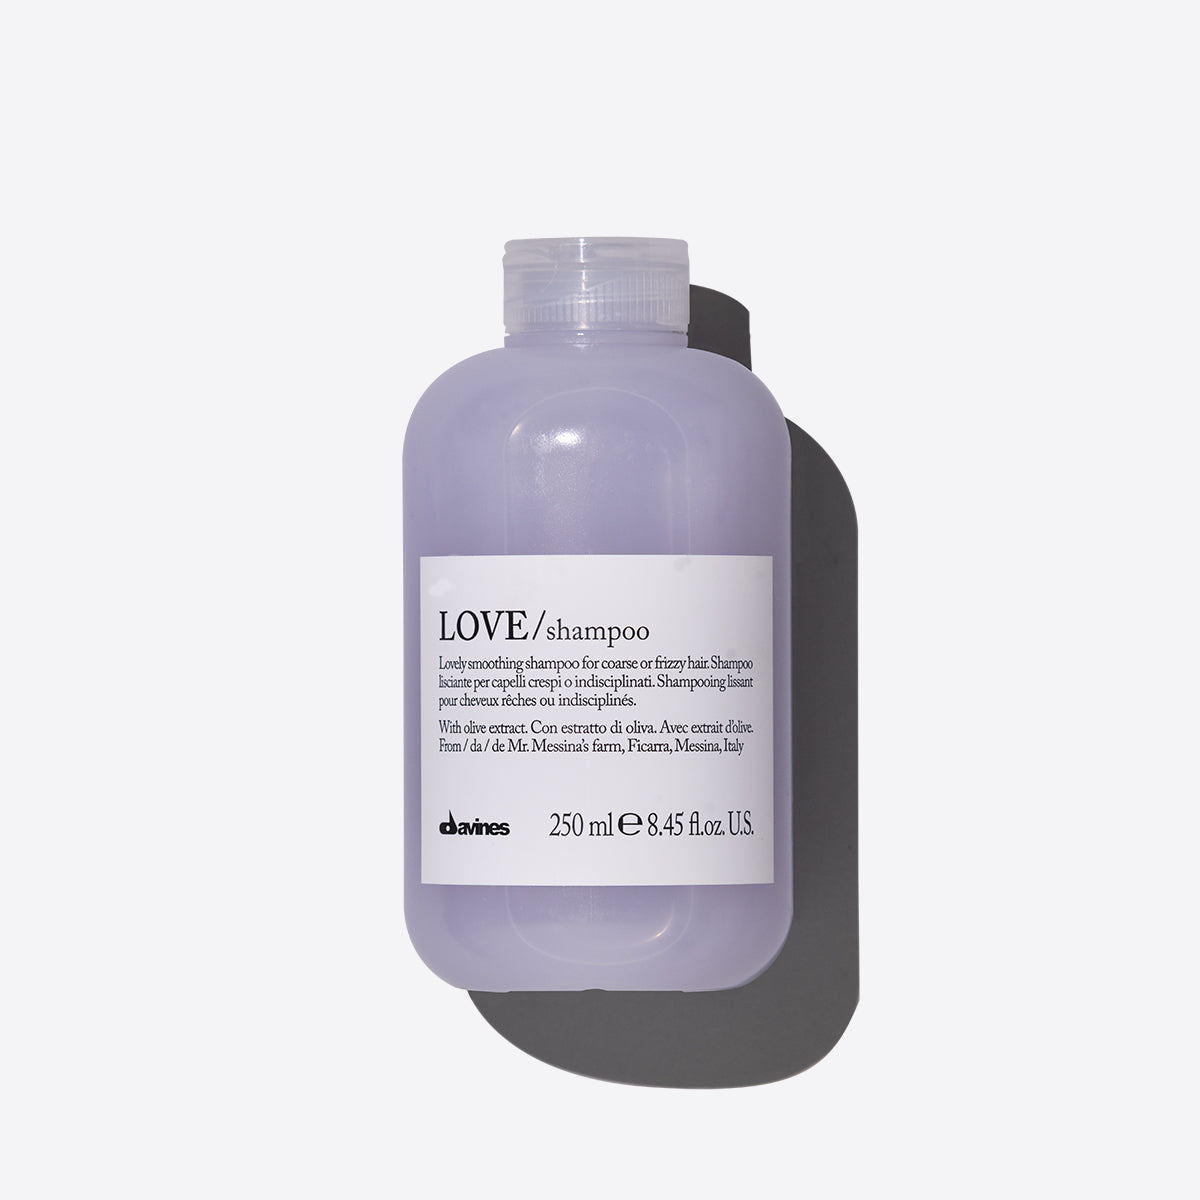 LOVE Shampoo 1  250 ml / 8,45 fl.oz.Davines